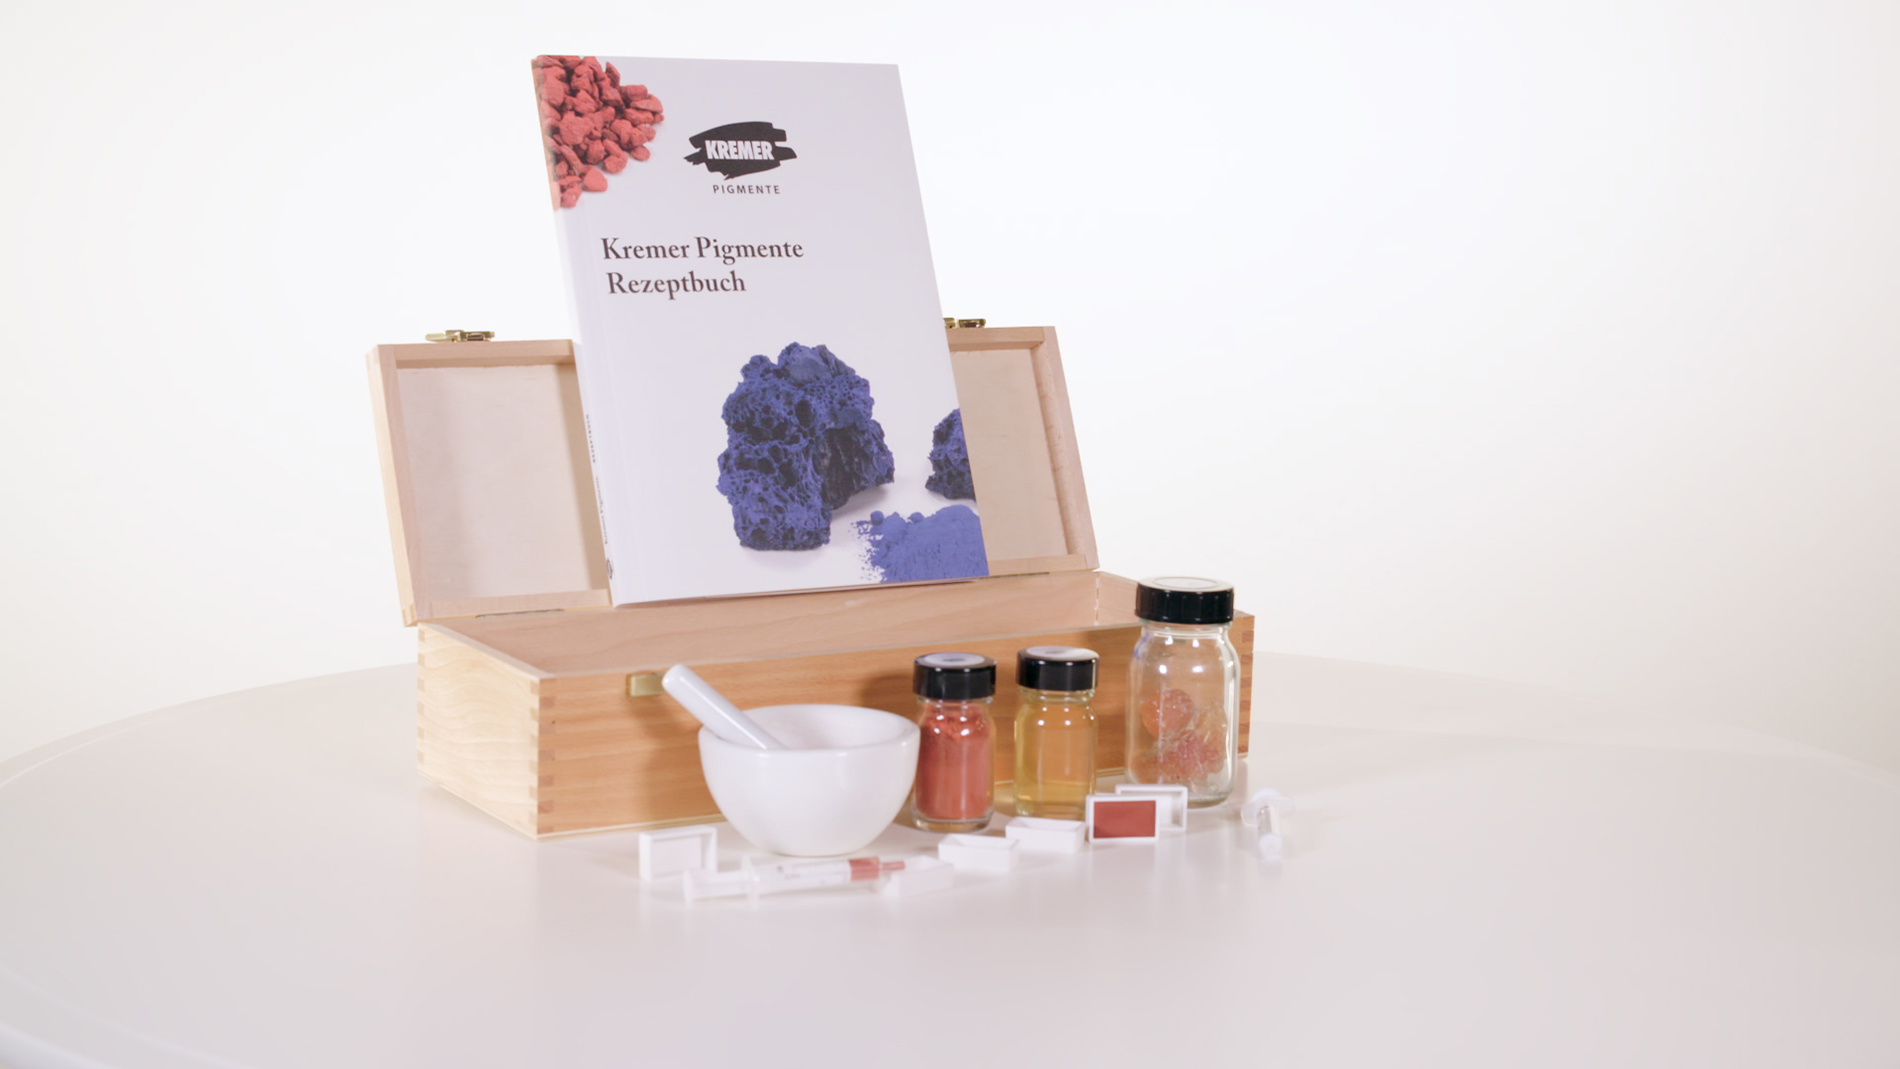 Creative Impulse Award 1st place: Kremer Pigmente 'Kremer Pigments Recipe Book'